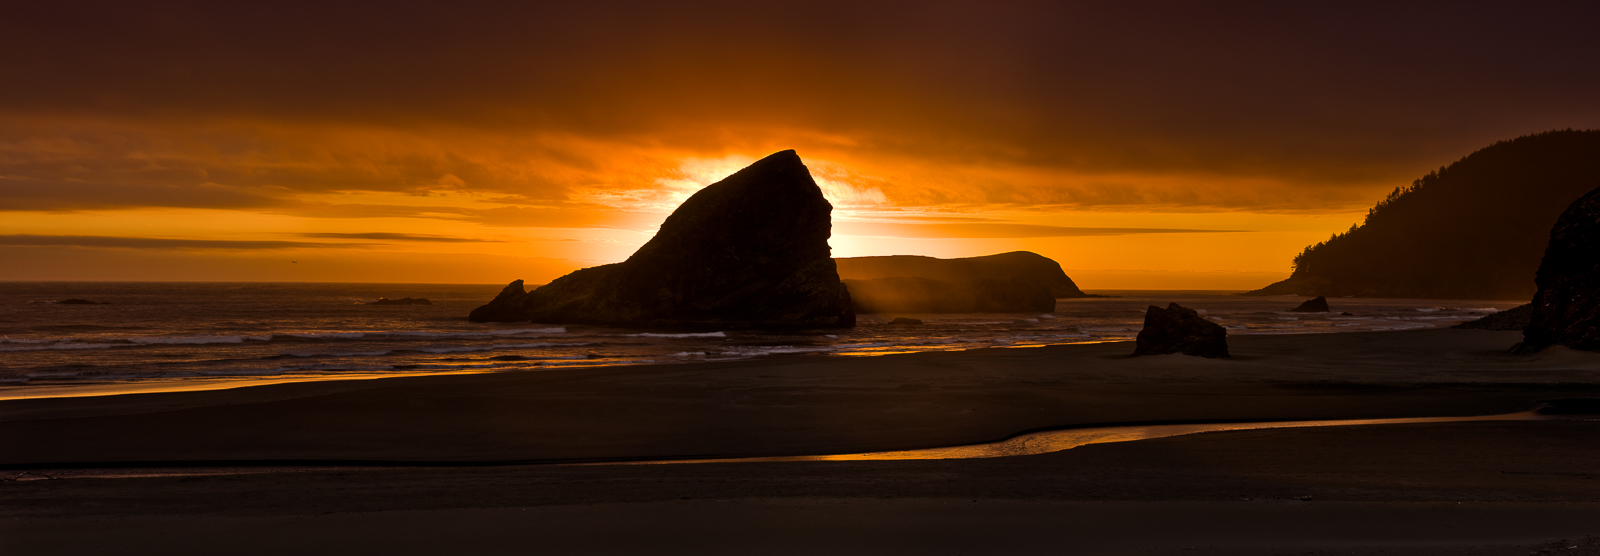 Maiden's Head in Gold,Pistol,River State Park, Oregon,warm,glow,water,panoramic, photo